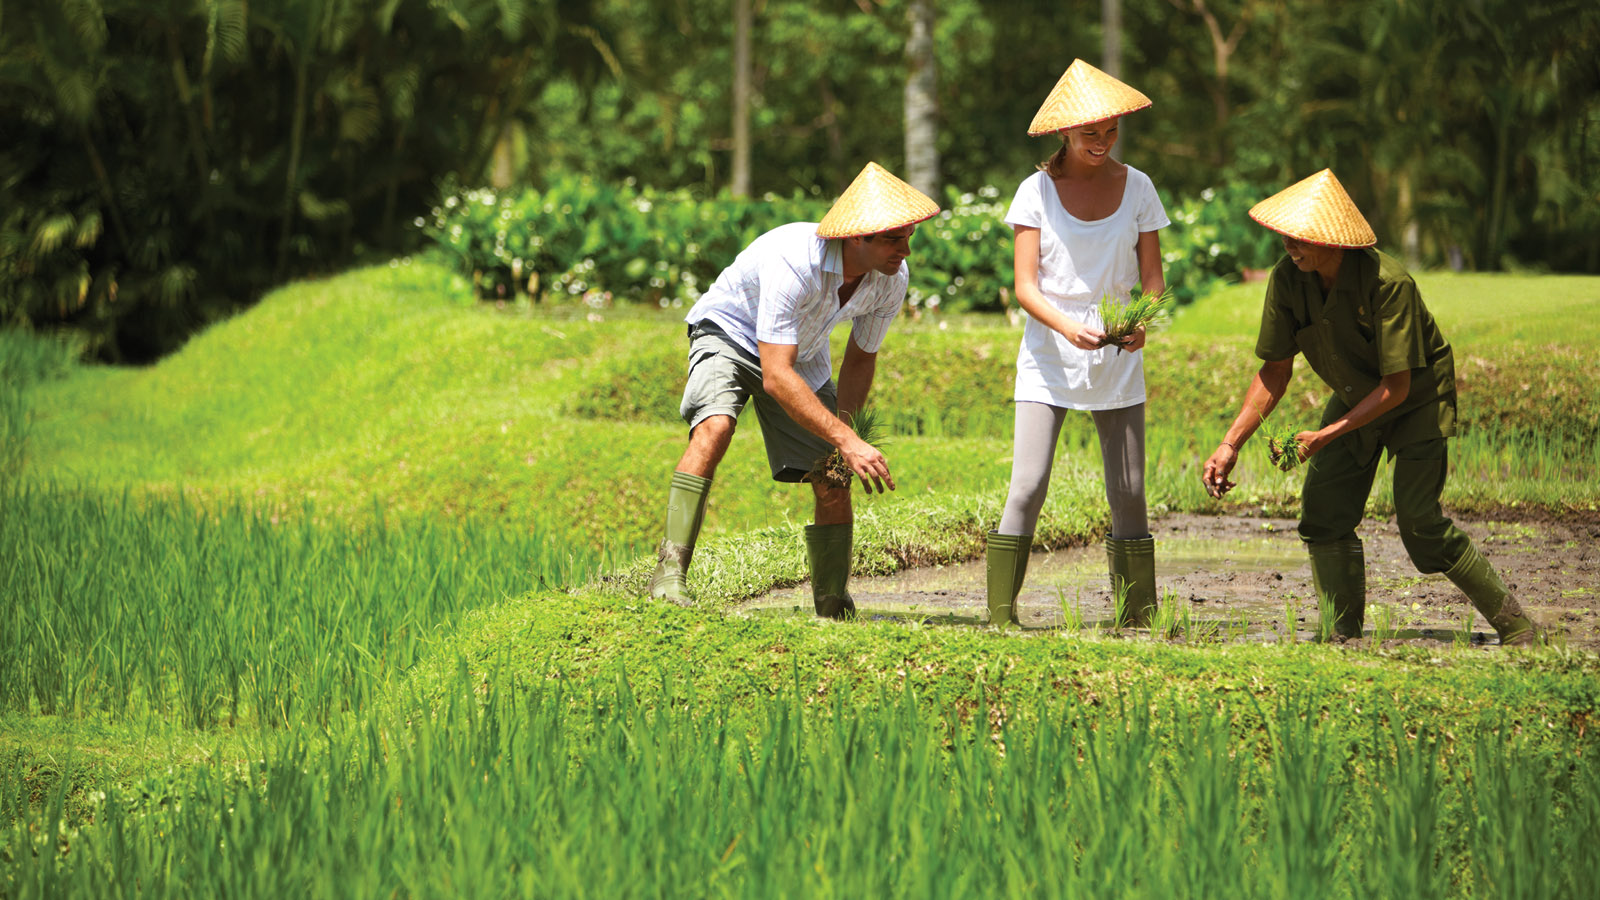 Experience Traditional, Rural Life and a Day in the Life of a Balinese Farmer at Four Seasons Resort Bali at Sayan